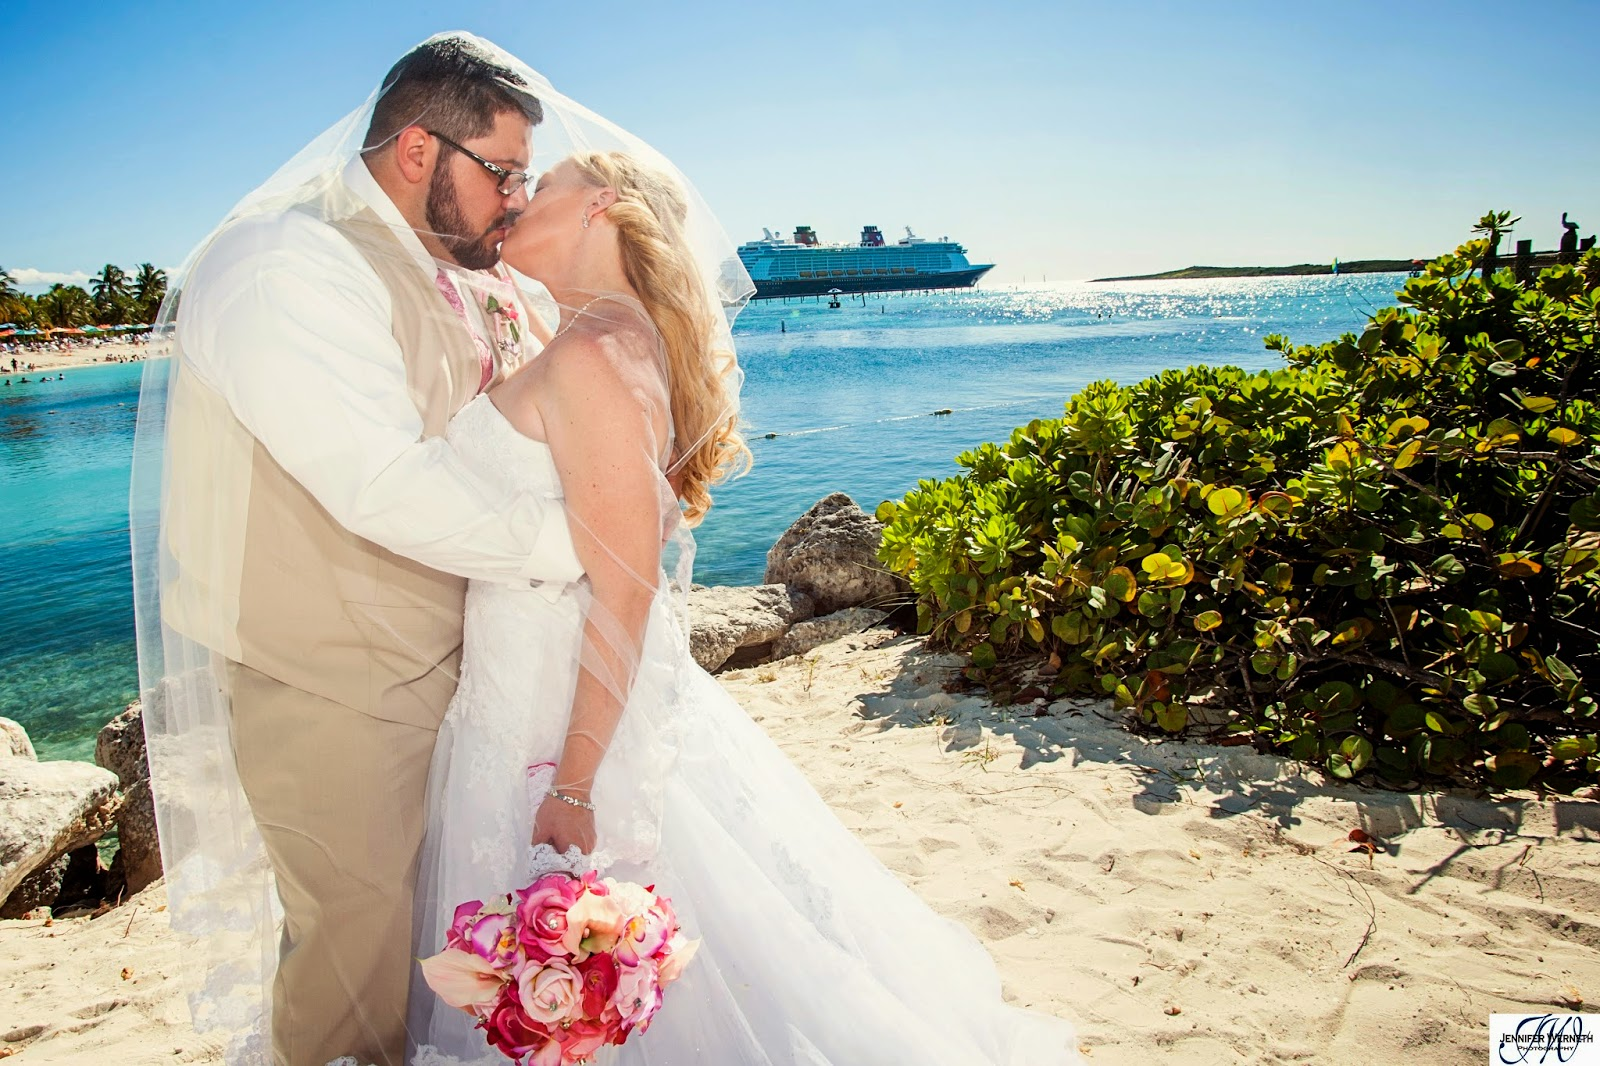 Matthew And Laura Disney Dream Cruise Wedding Photography Castaway Cay Bahamas Nau